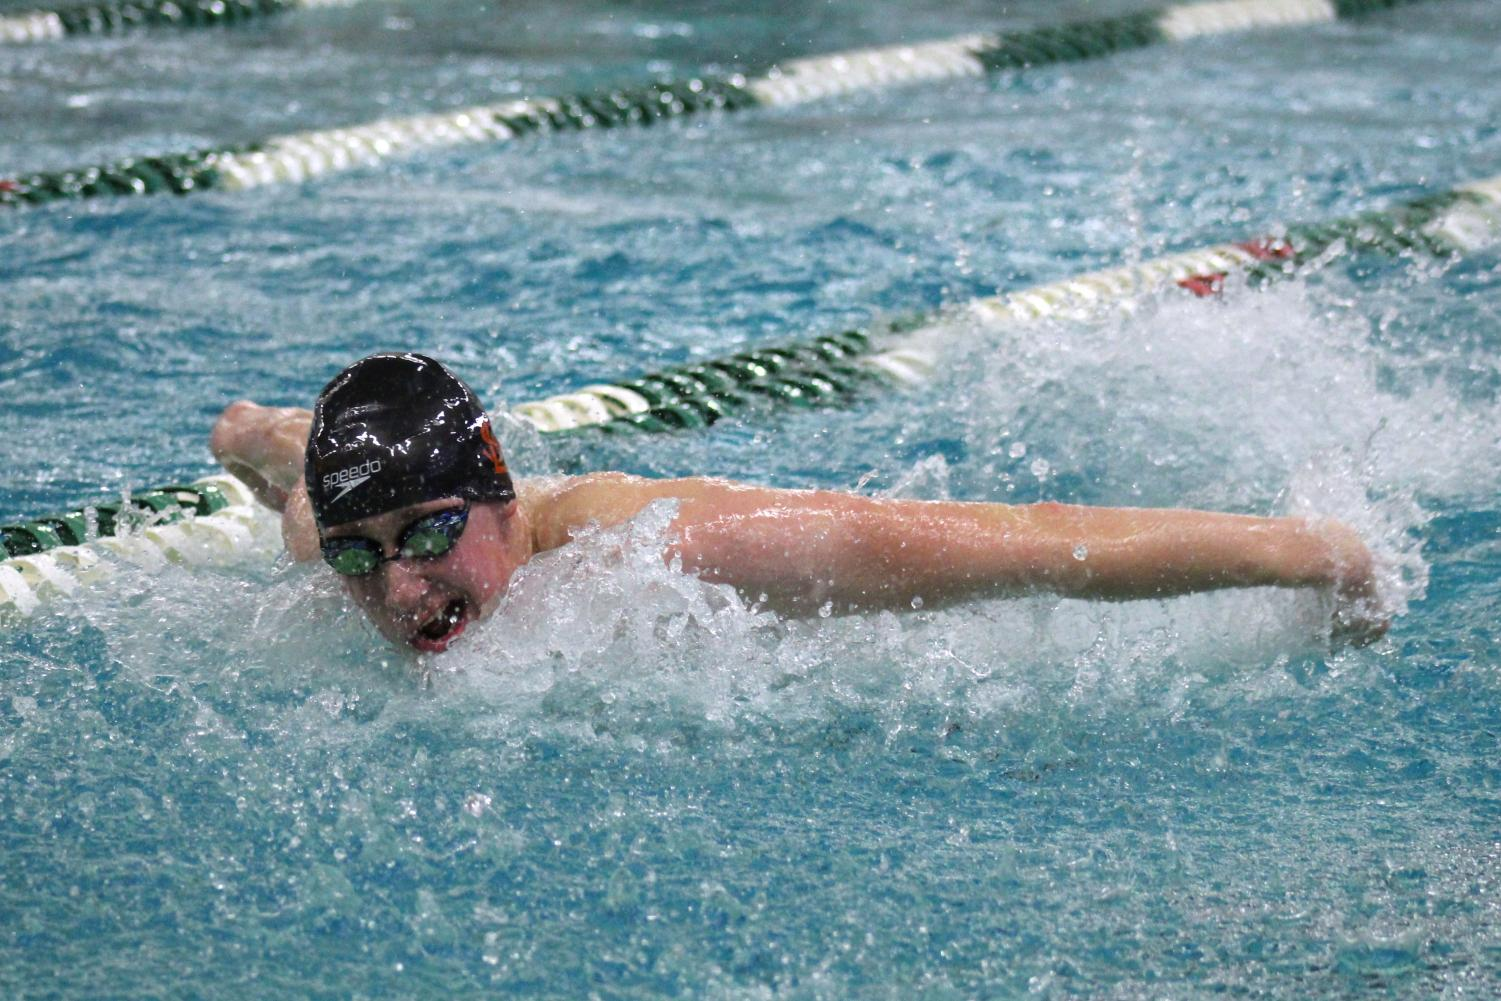 Senior+Luke+Anderson+takes+a+breath+during+100m+butterfly+race.+Anderson+is+a+part+of+the+200m+Medley+Park+relay+that+qualified+for+State.+